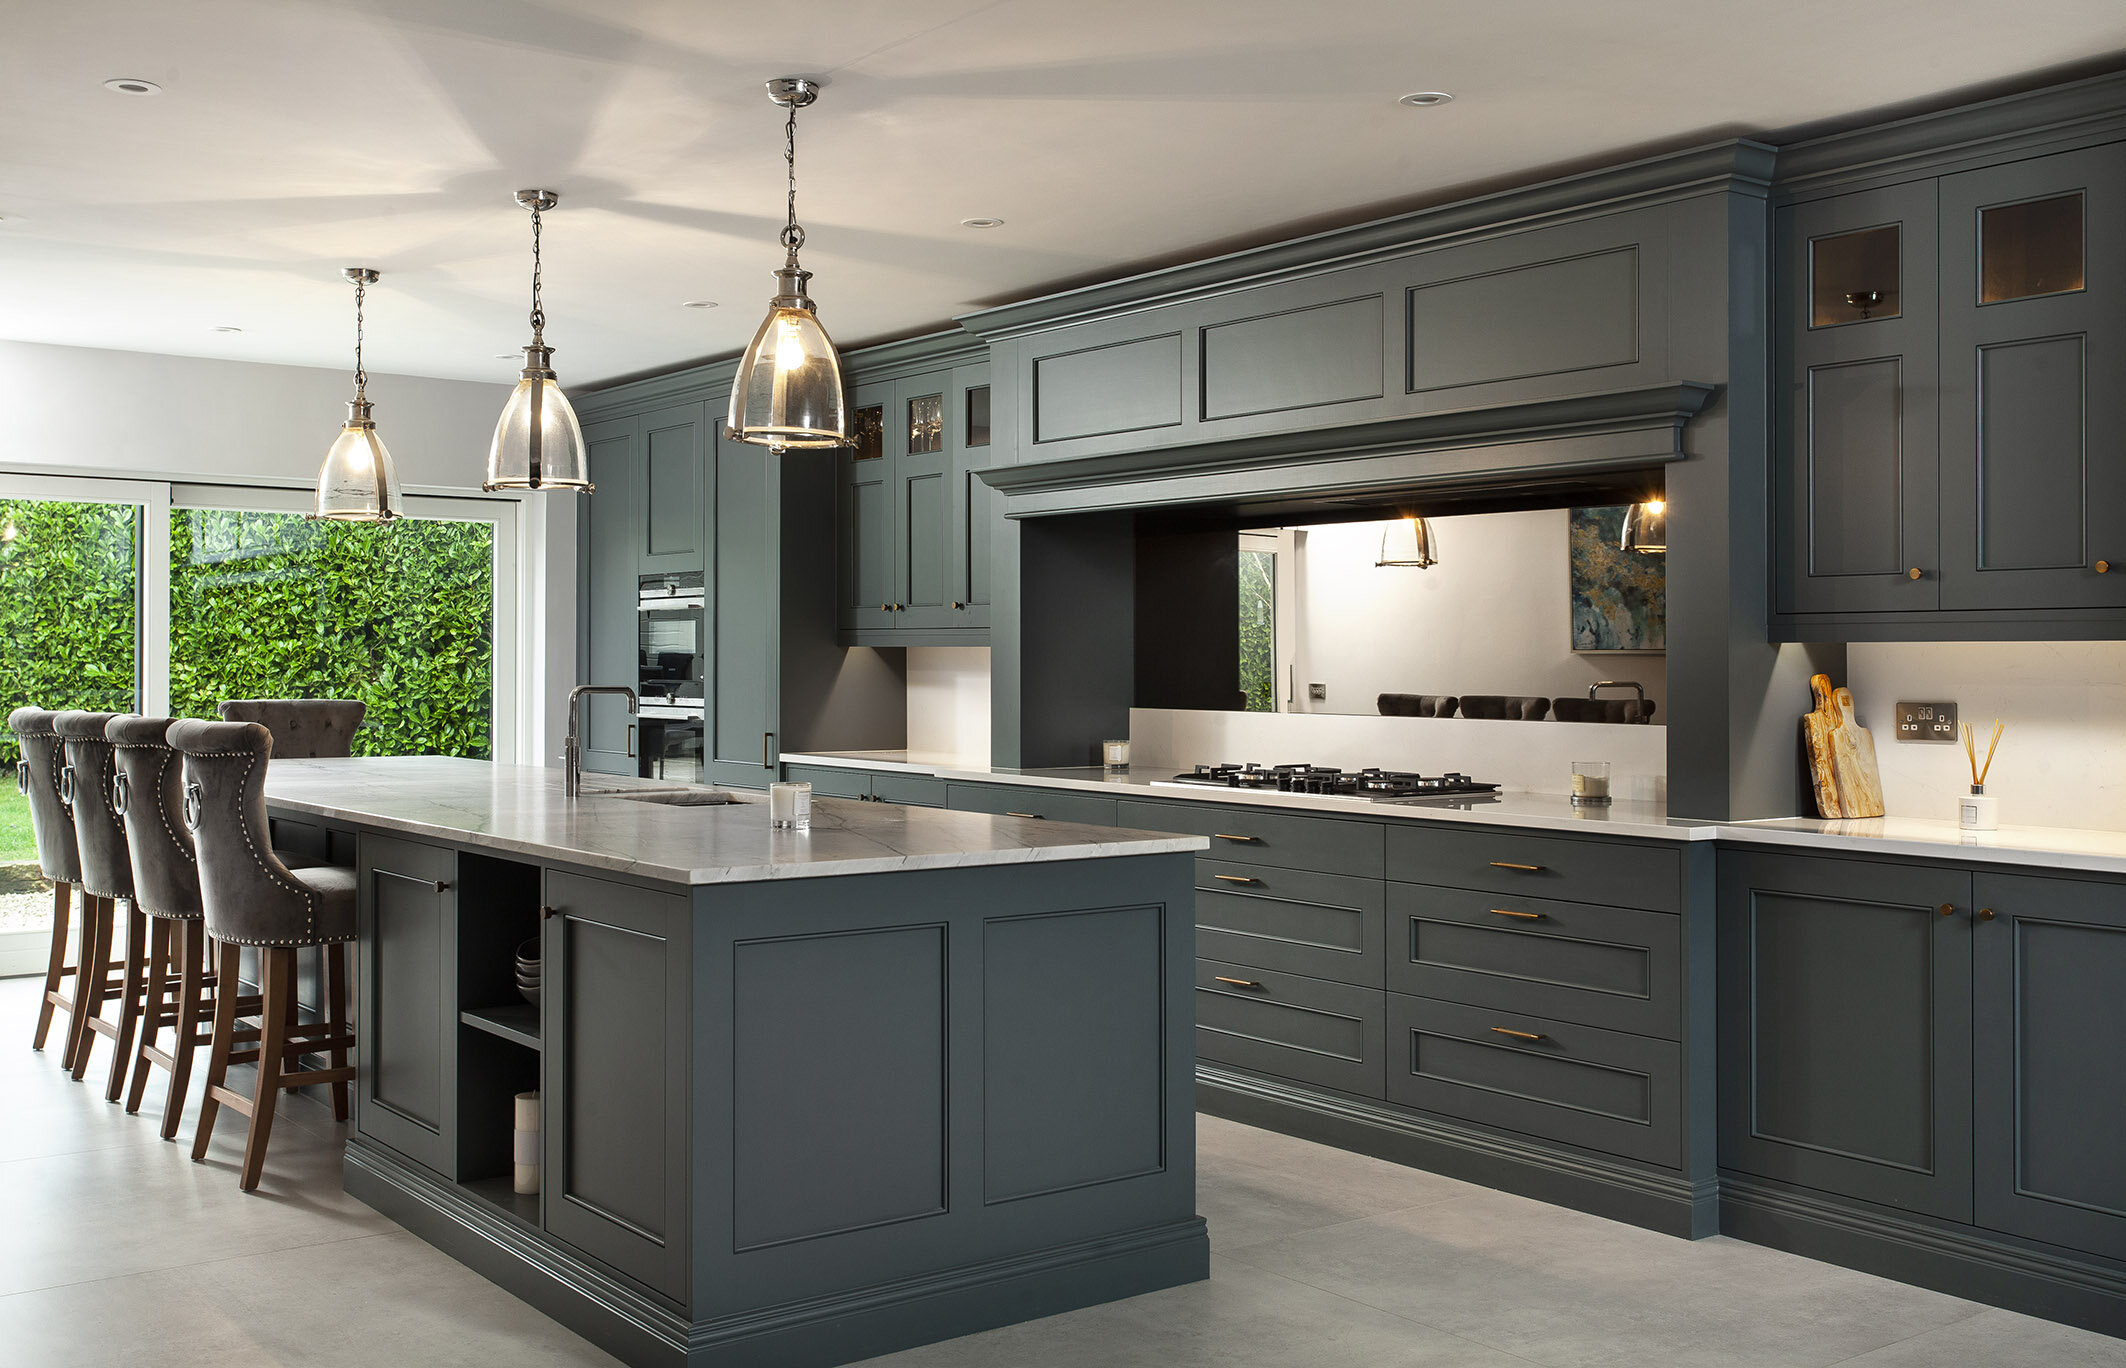 Bespoke Kitchen Design Ireland Noel Dempsey Design